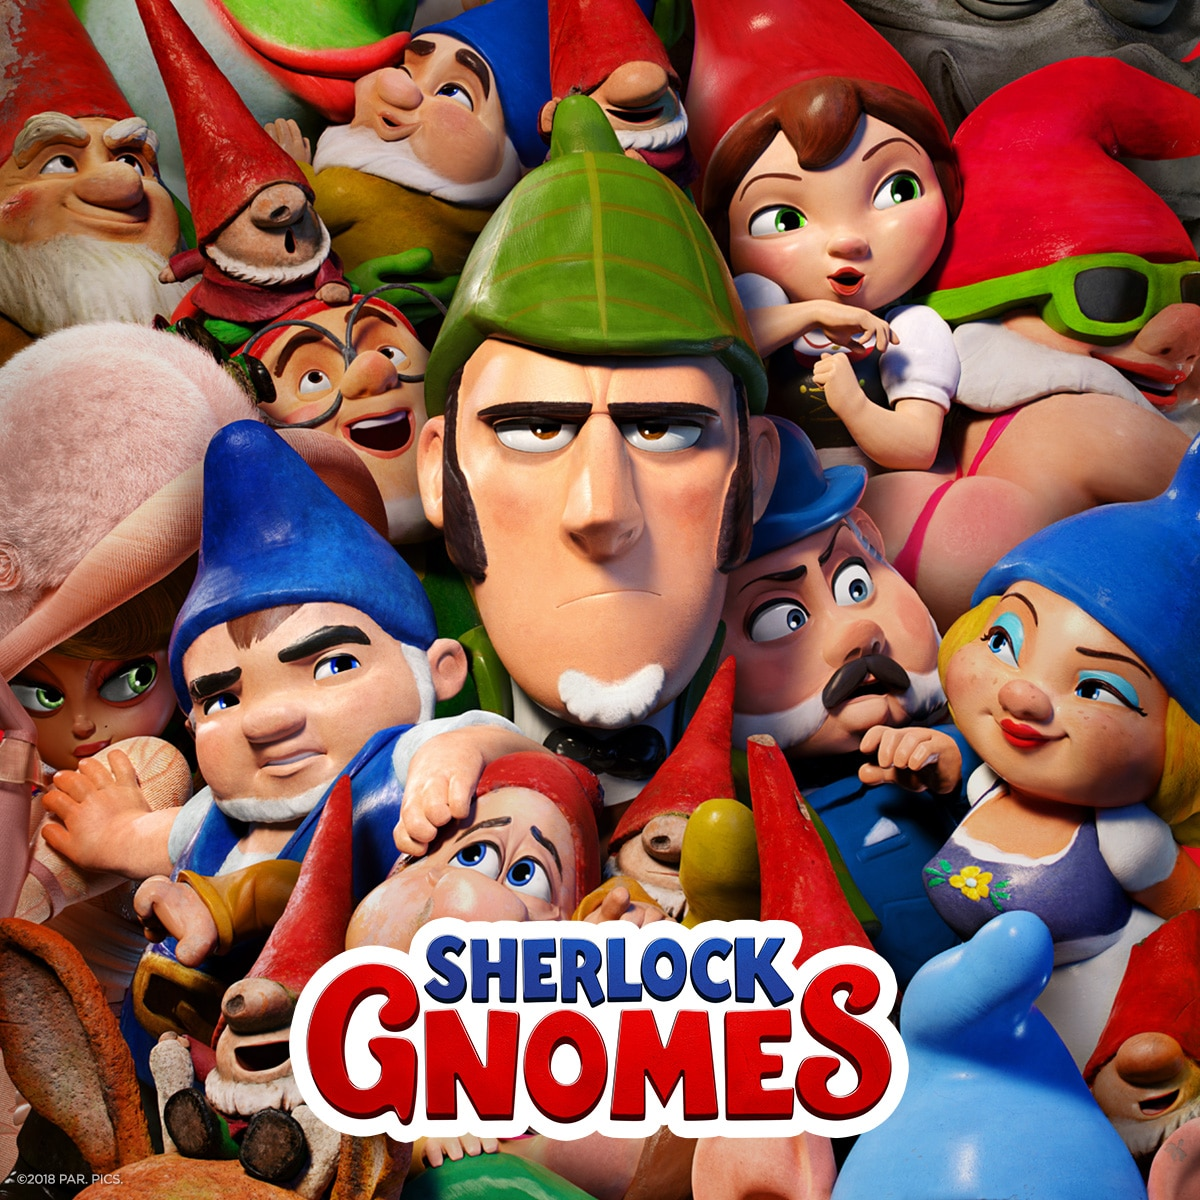 artoon Network UK Teams Up With Paramount Pictures To Celebrate The Launch Of The Sherlock Gnomes Movie